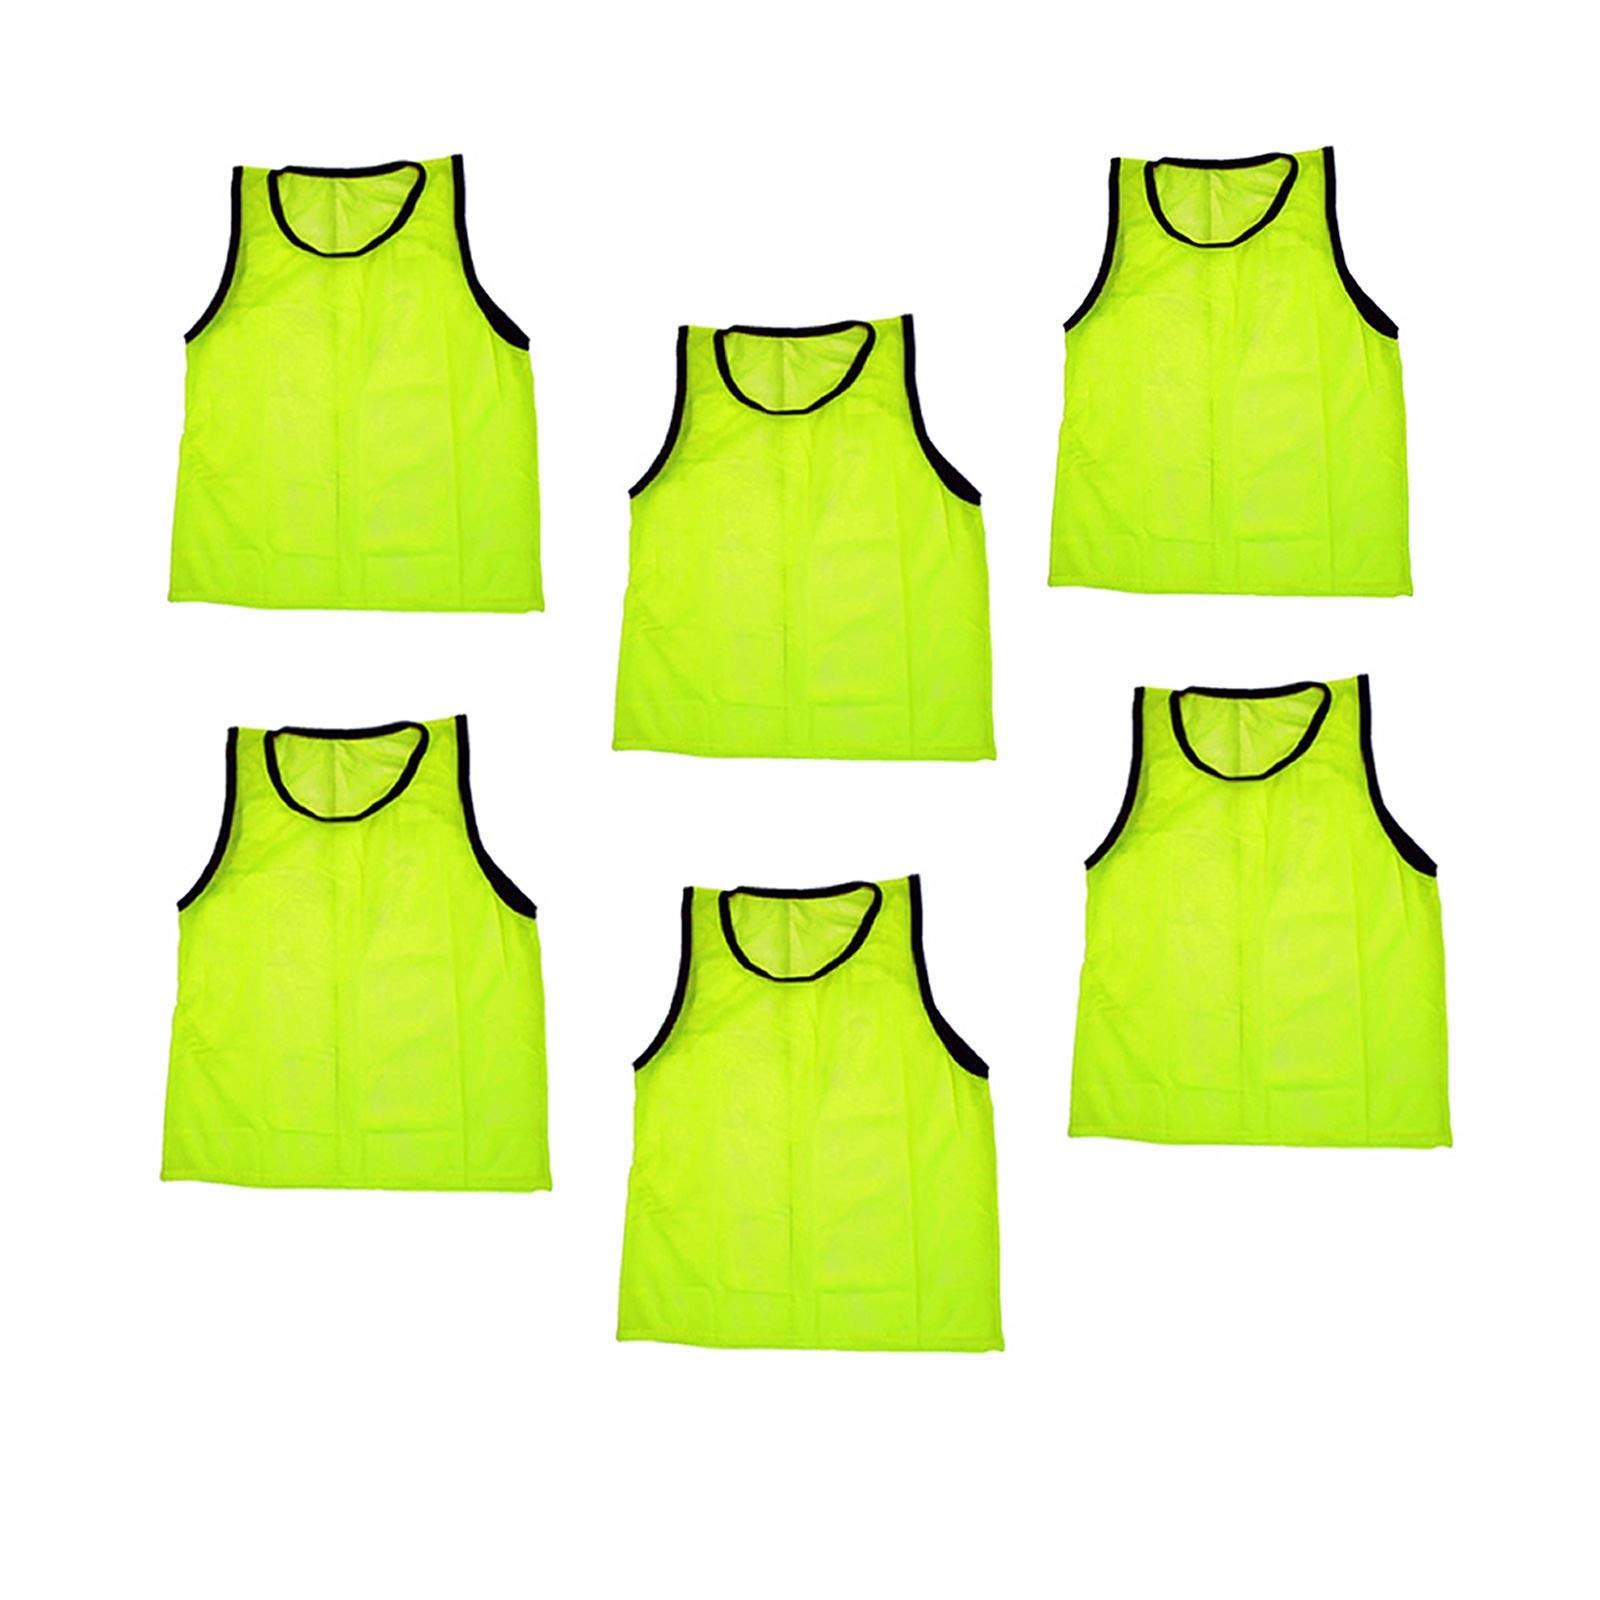 Bright Sun 6 pcs Scrimmage Vests Pinnies Soccer Youth Yellow #BDMN by Bright Sun